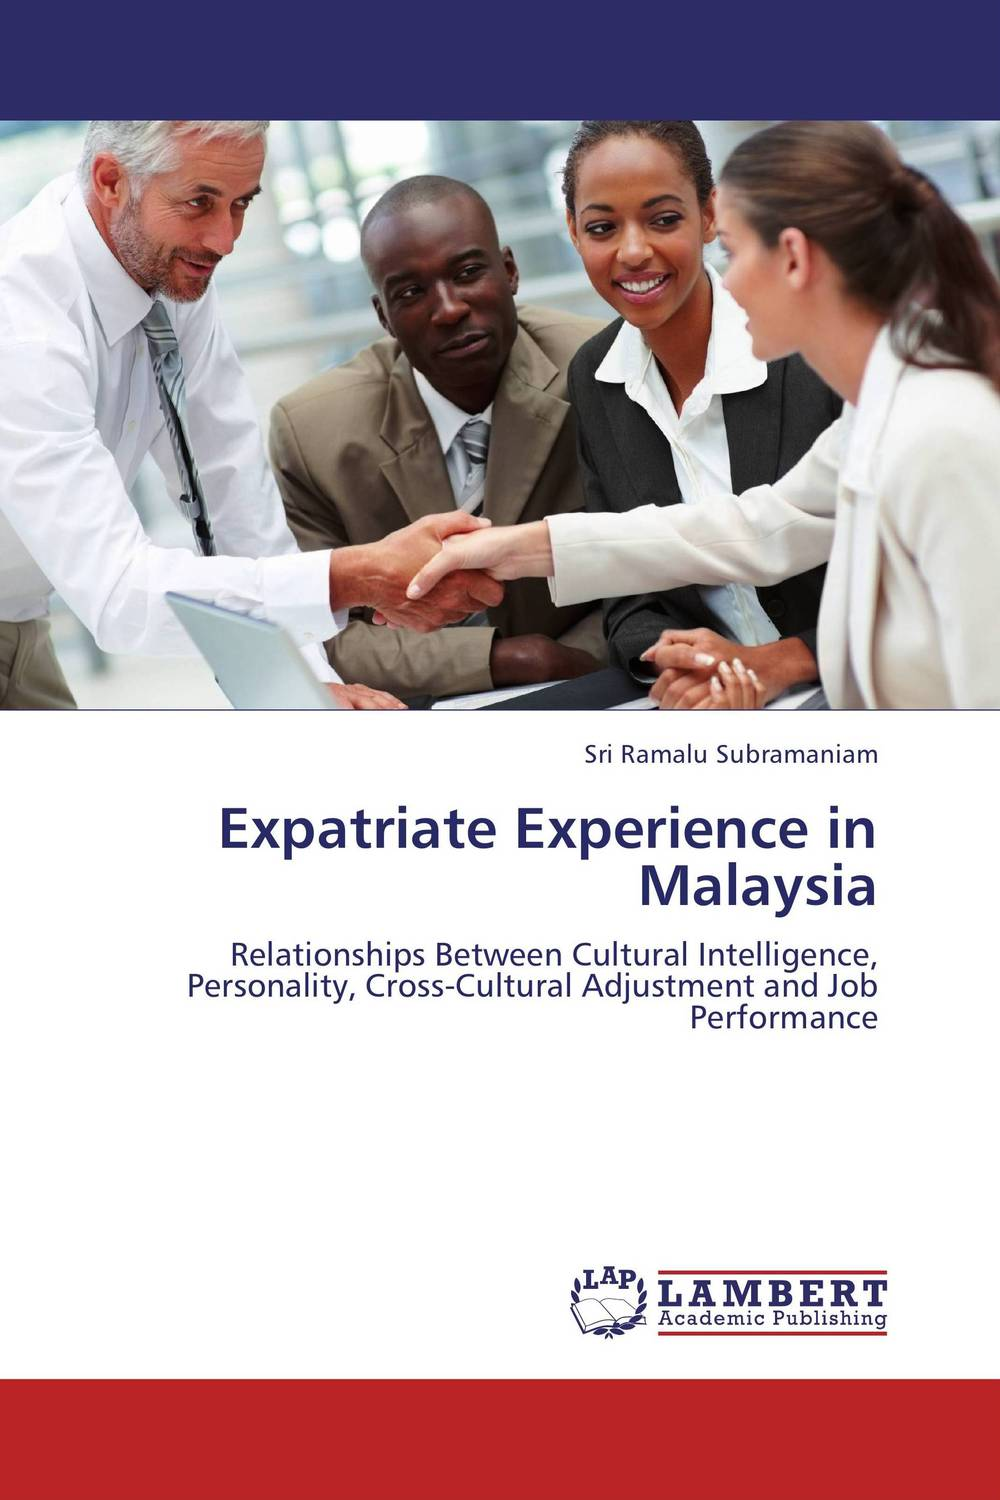 Expatriate Experience in Malaysia